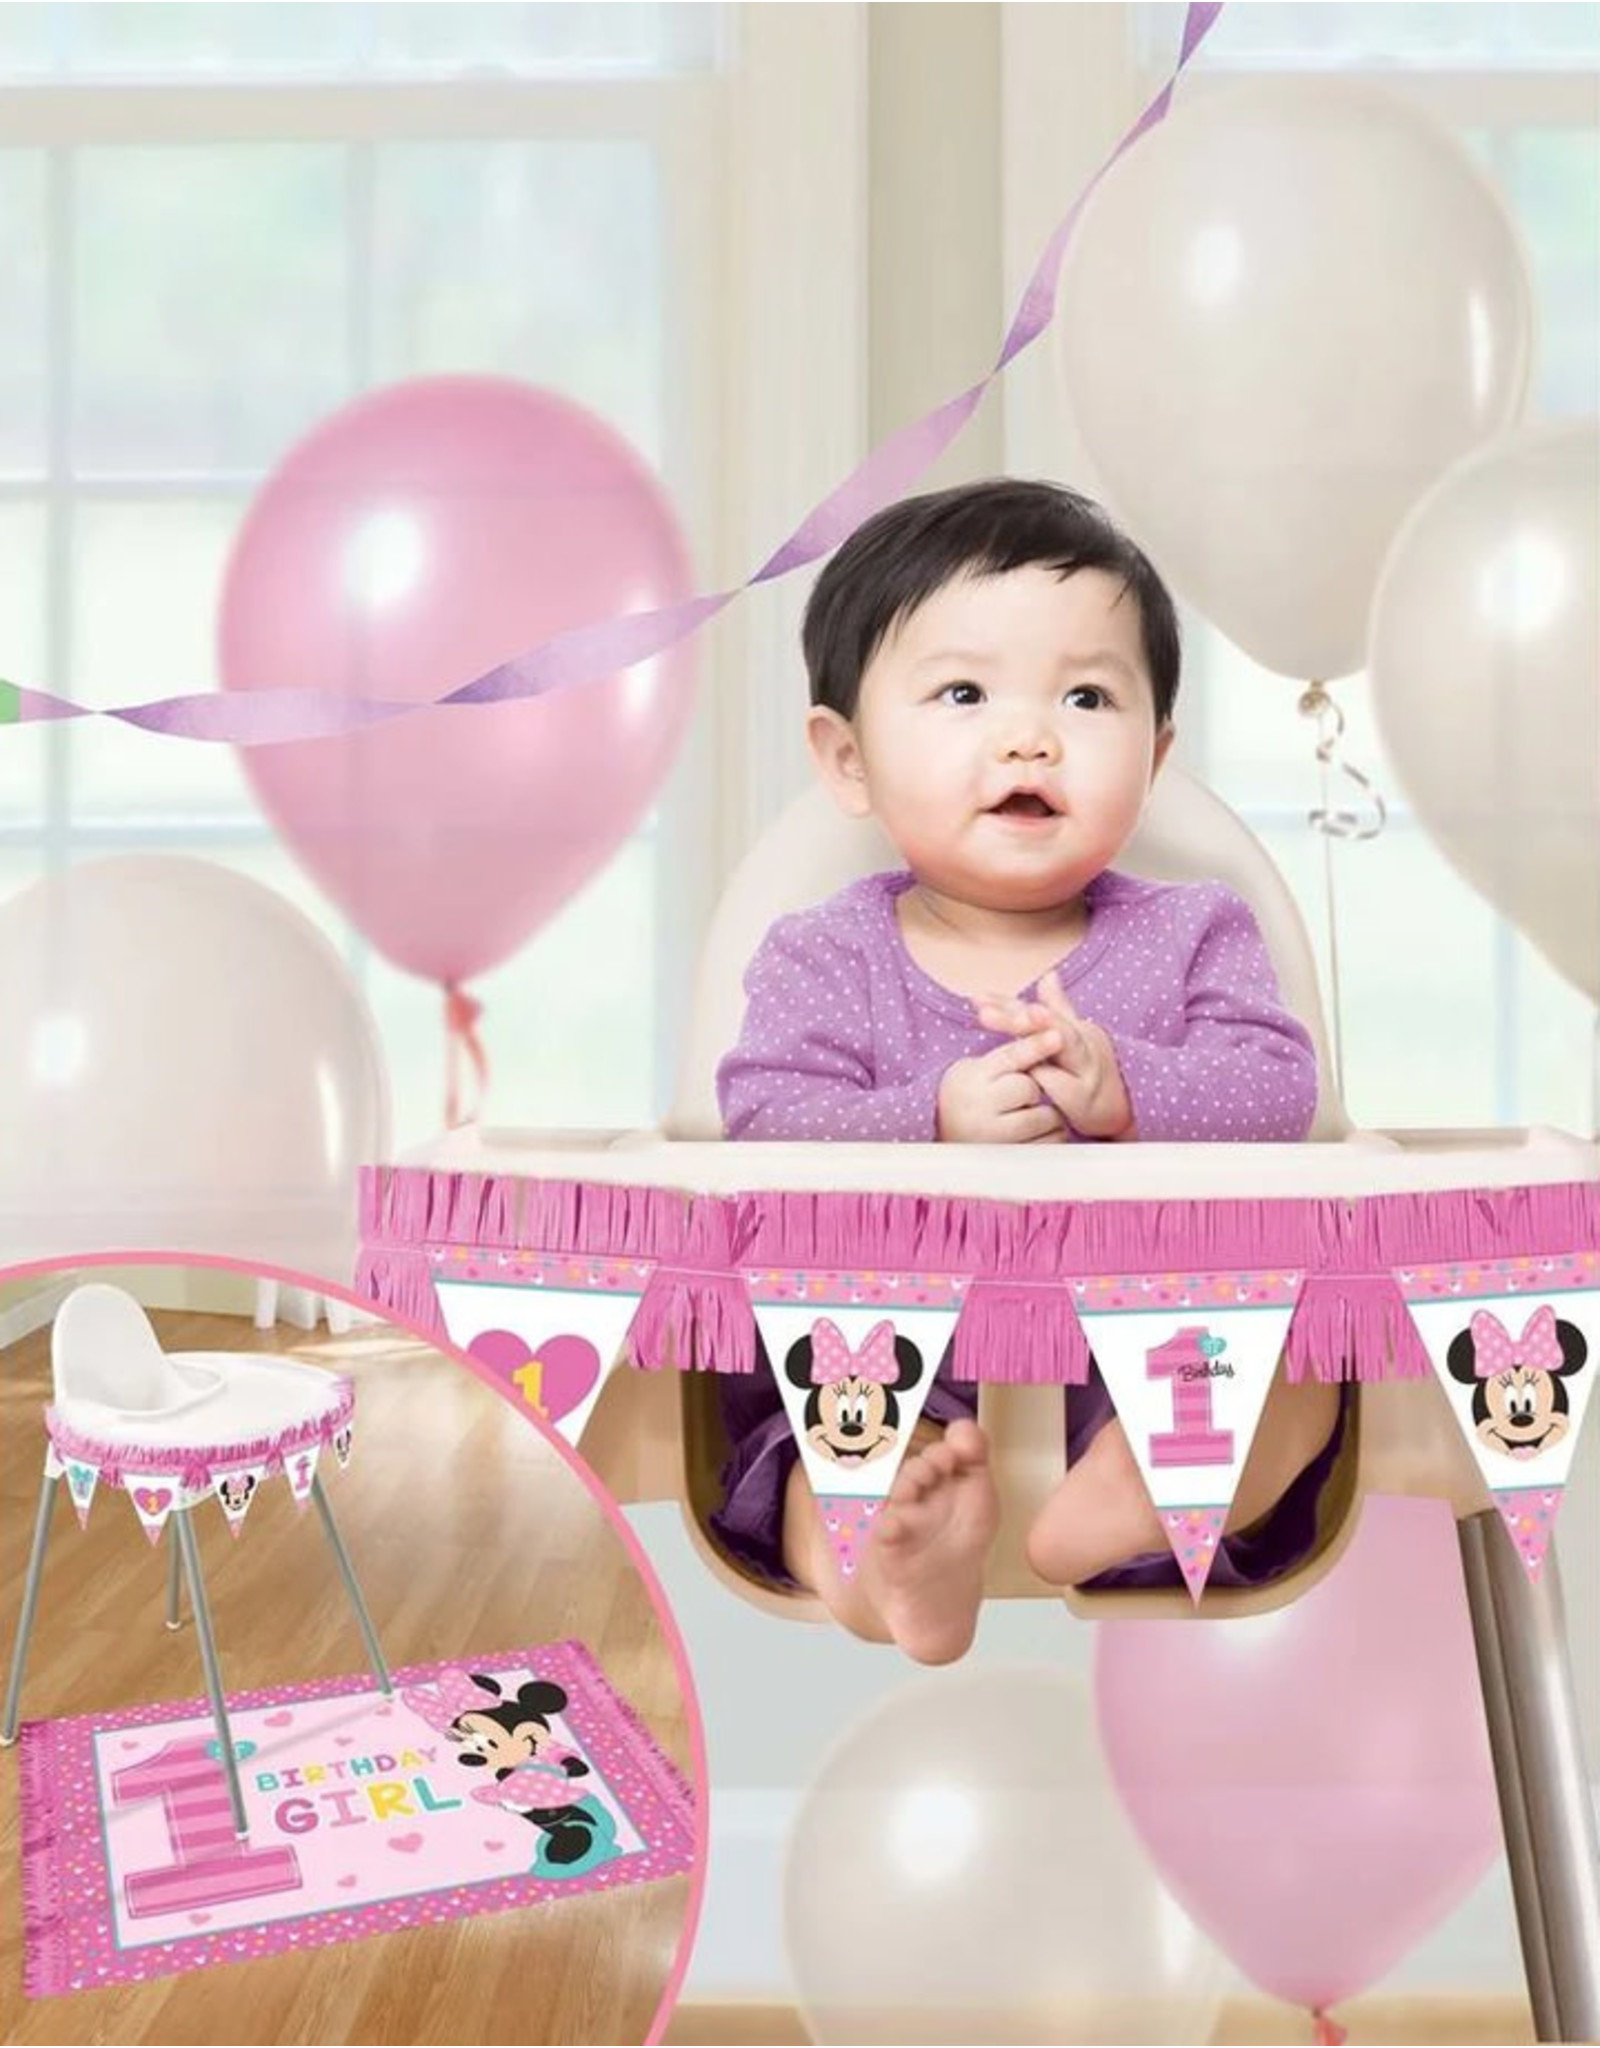 Minnie Fun To Be One High Chair Decorating Kit